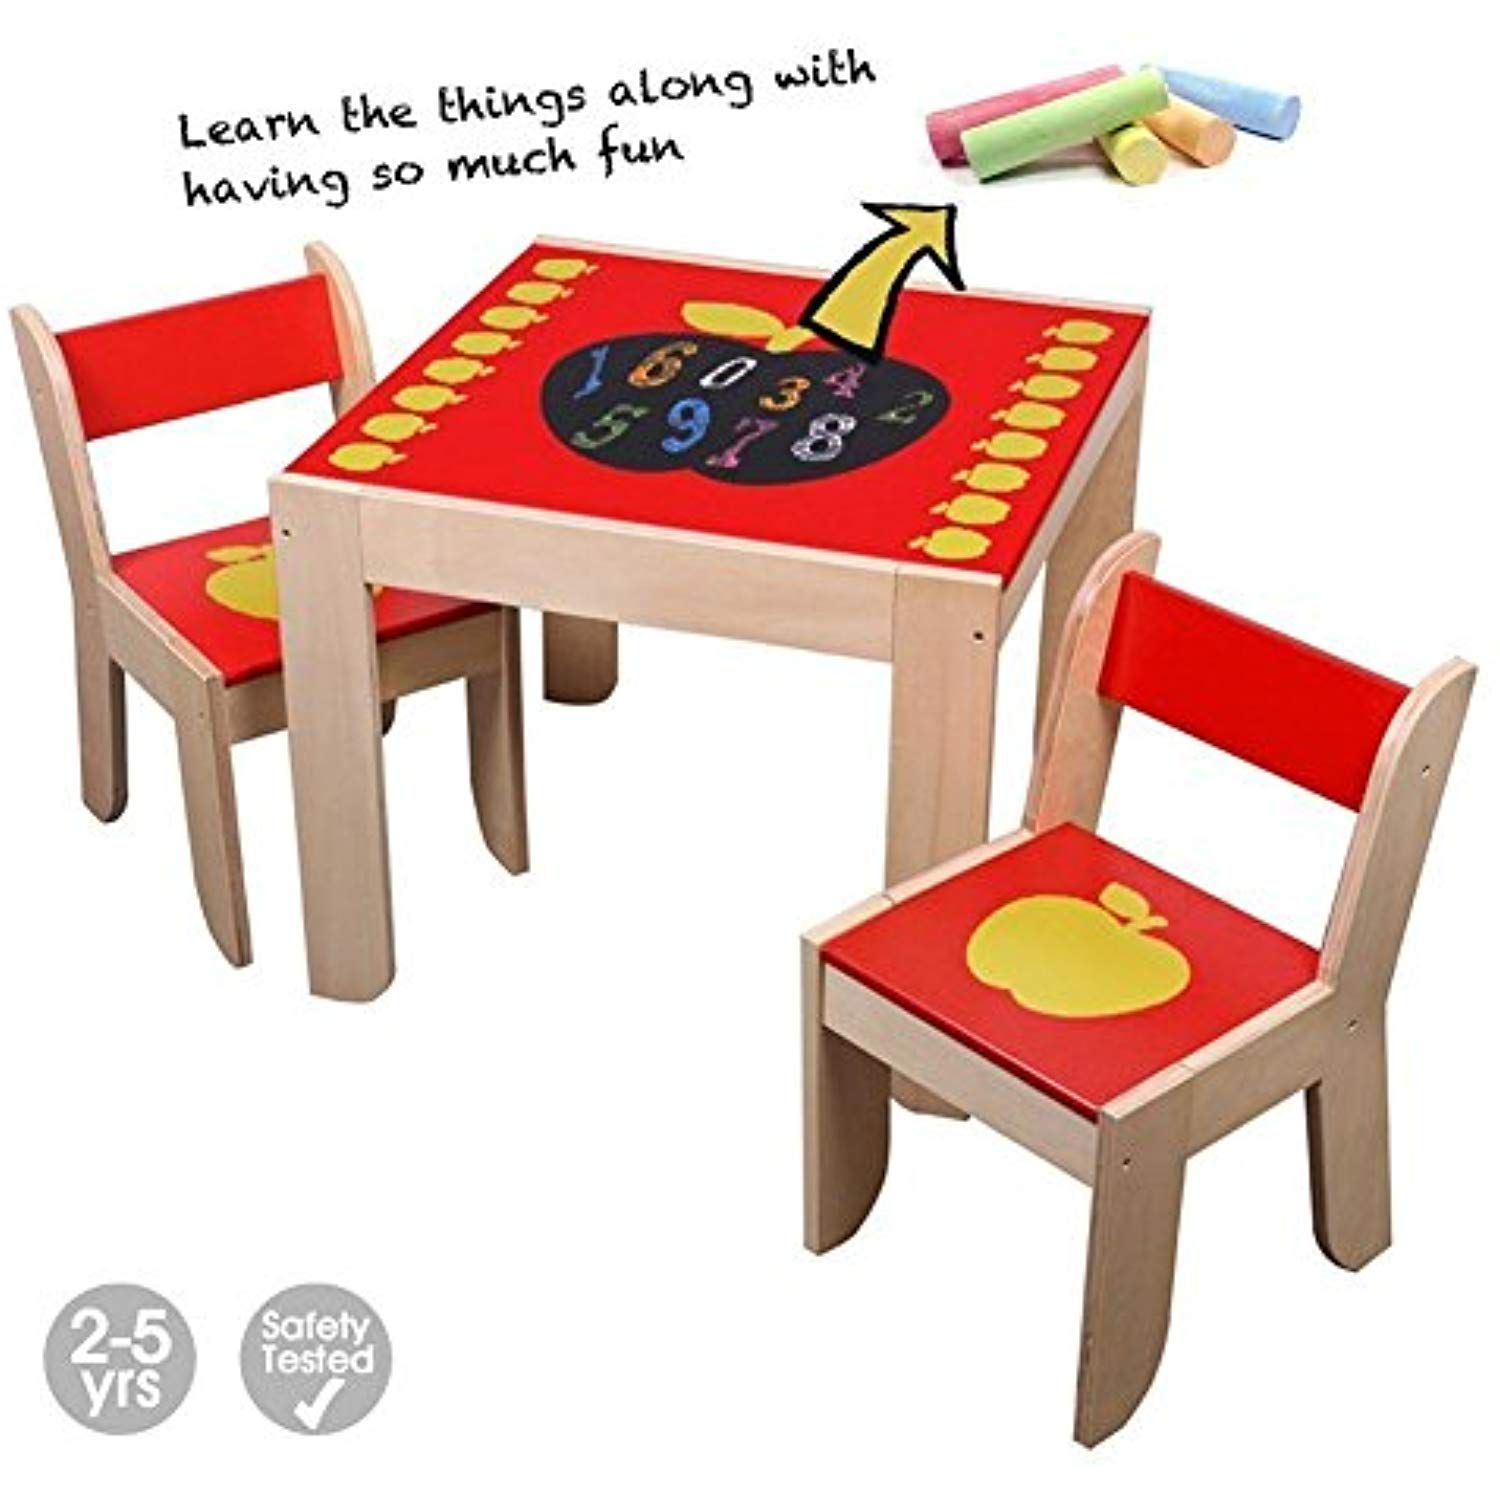 Labebe Wooden Activity Table Chair Red Apple Toddler Table With Chalkboard For 1 5 Years Learning Activ Kids Activity Table Baby Play Table Kids Dining Table